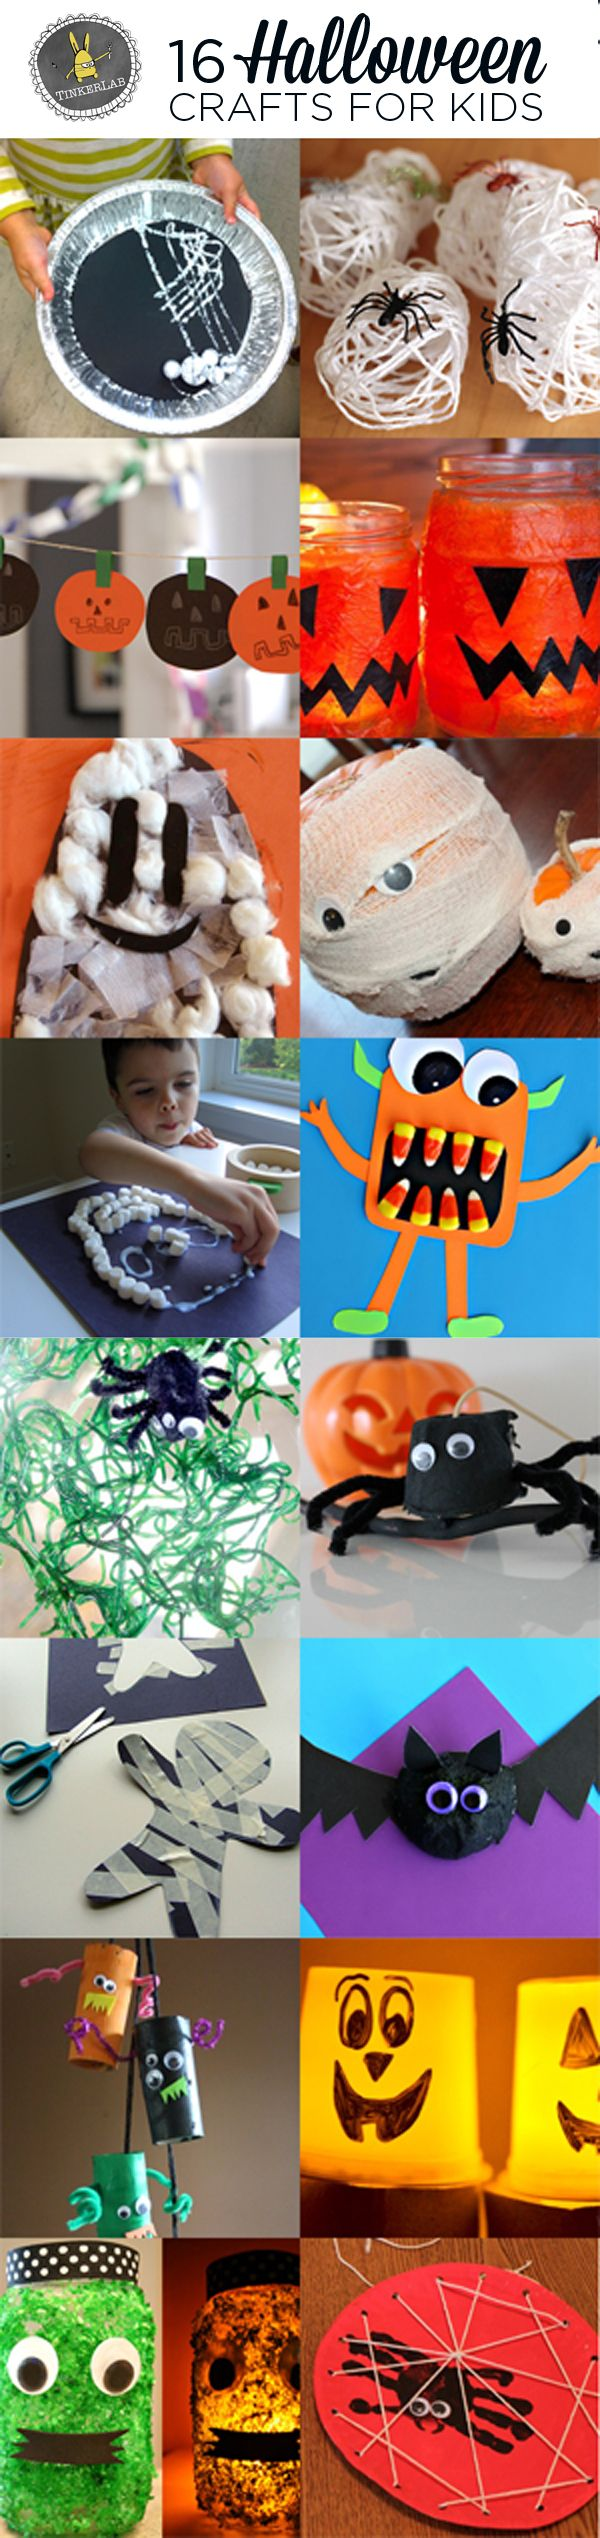 Here comes Halloween! I scoured some of my favorite kid-friendly sites and found this awesome selection of Halloween Crafts for Kids.